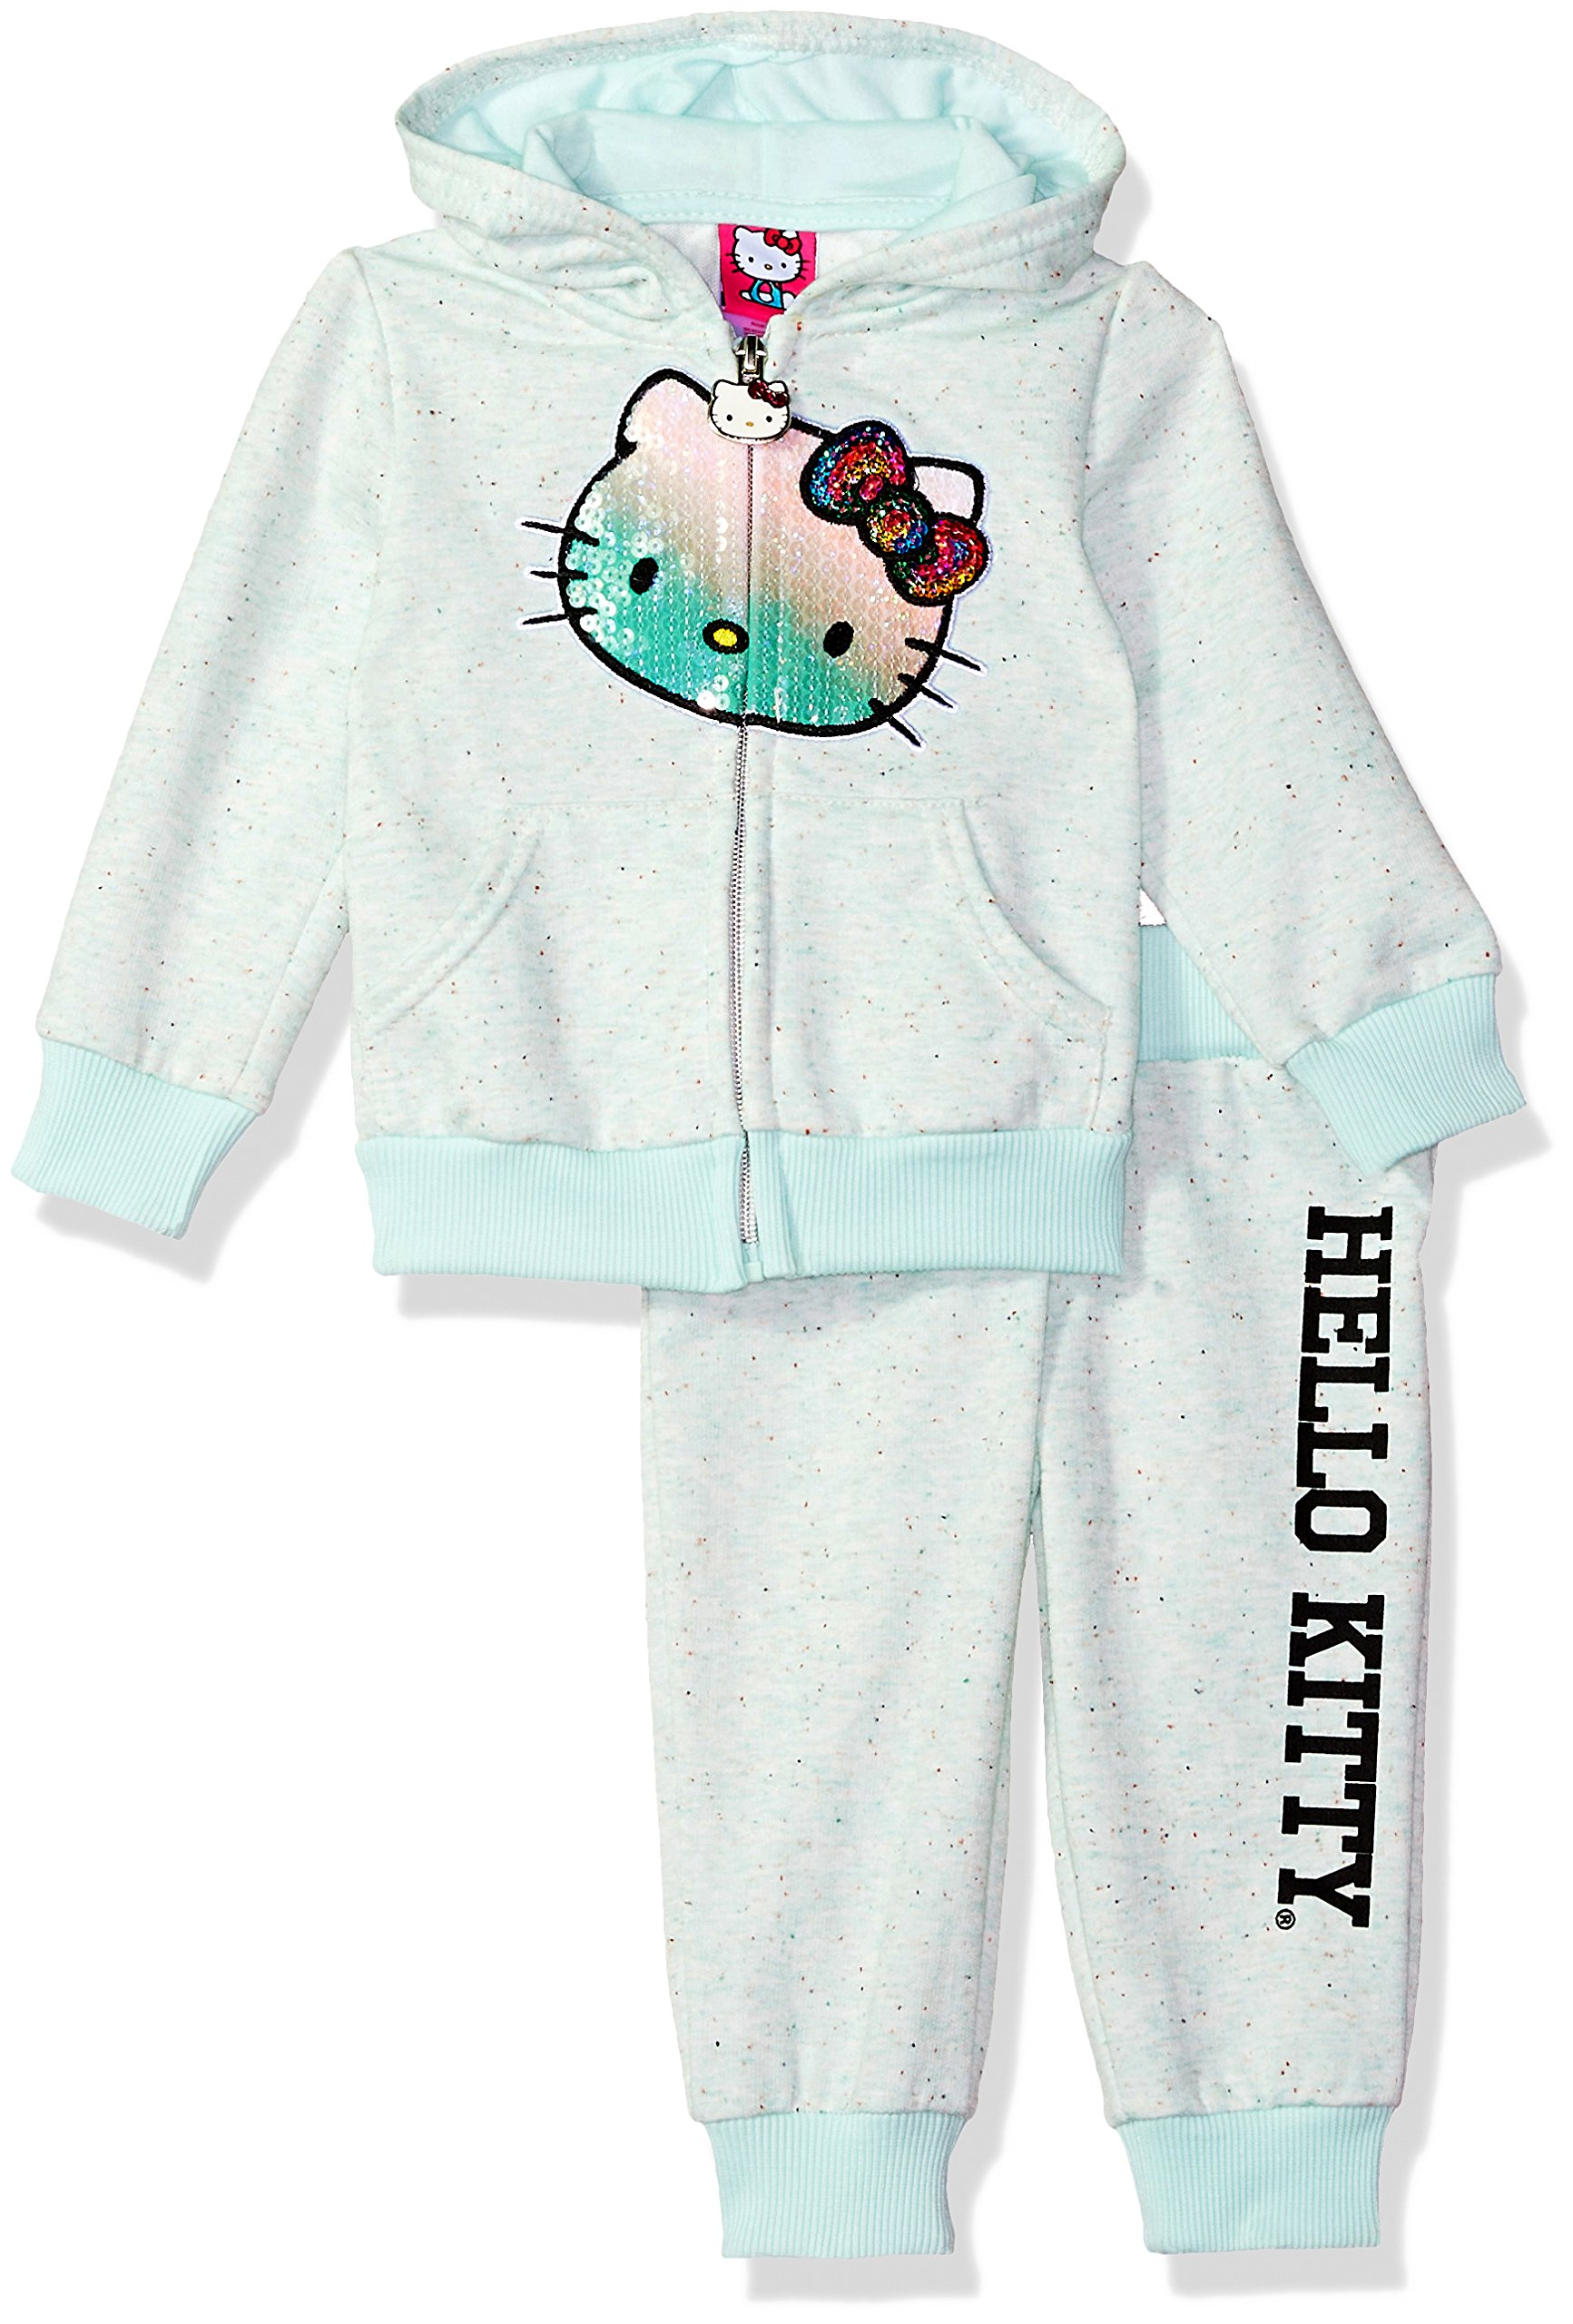 Hello Kitty Baby Girls' 2 Piece Embellished Active